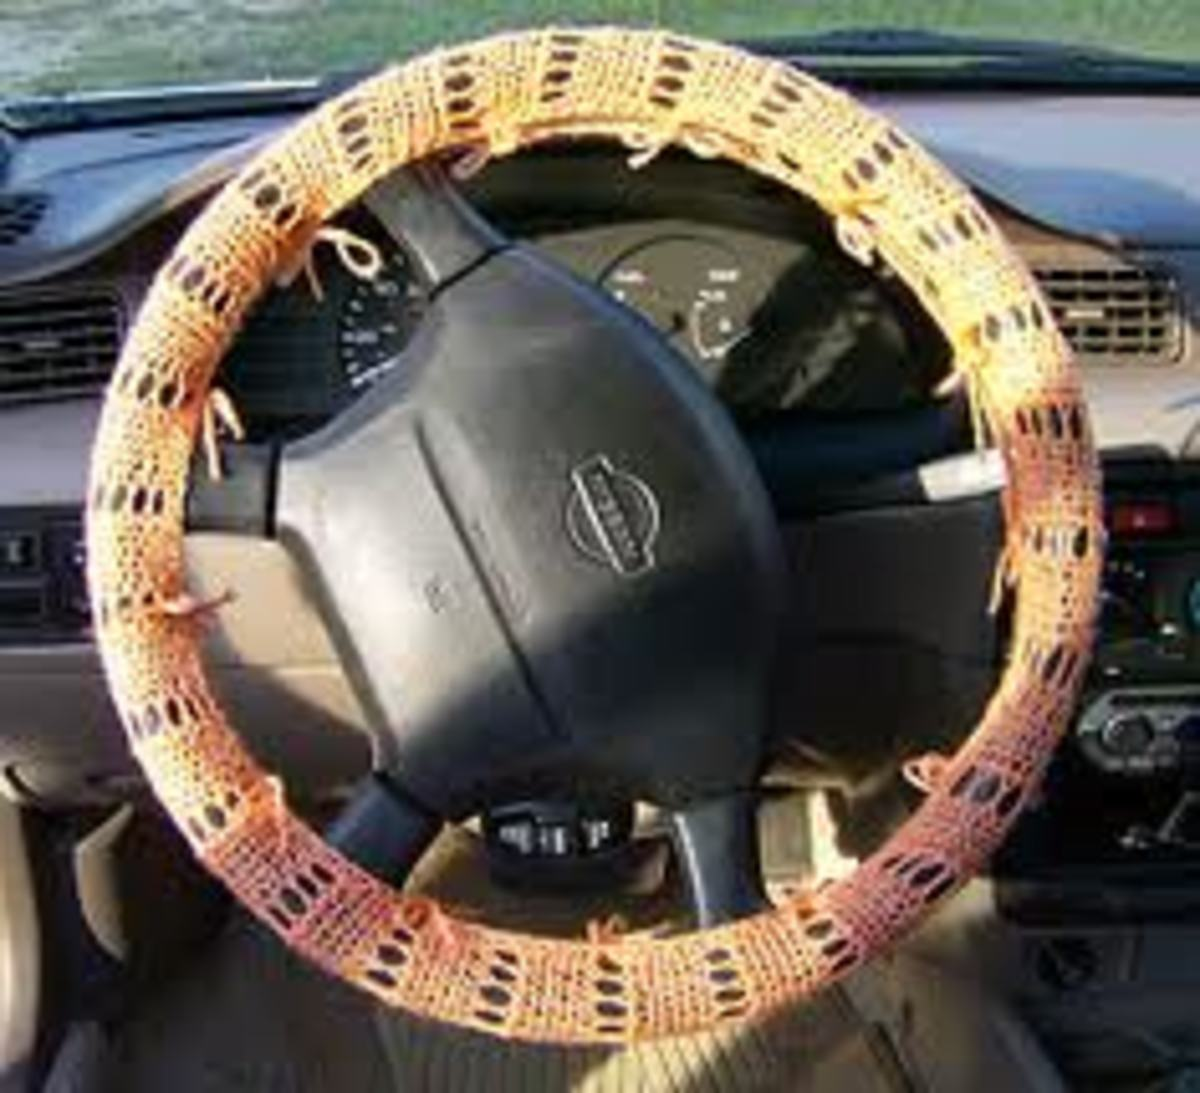 How to Make a Steering Wheel Cover with Yarn - A Fun Crochet Project